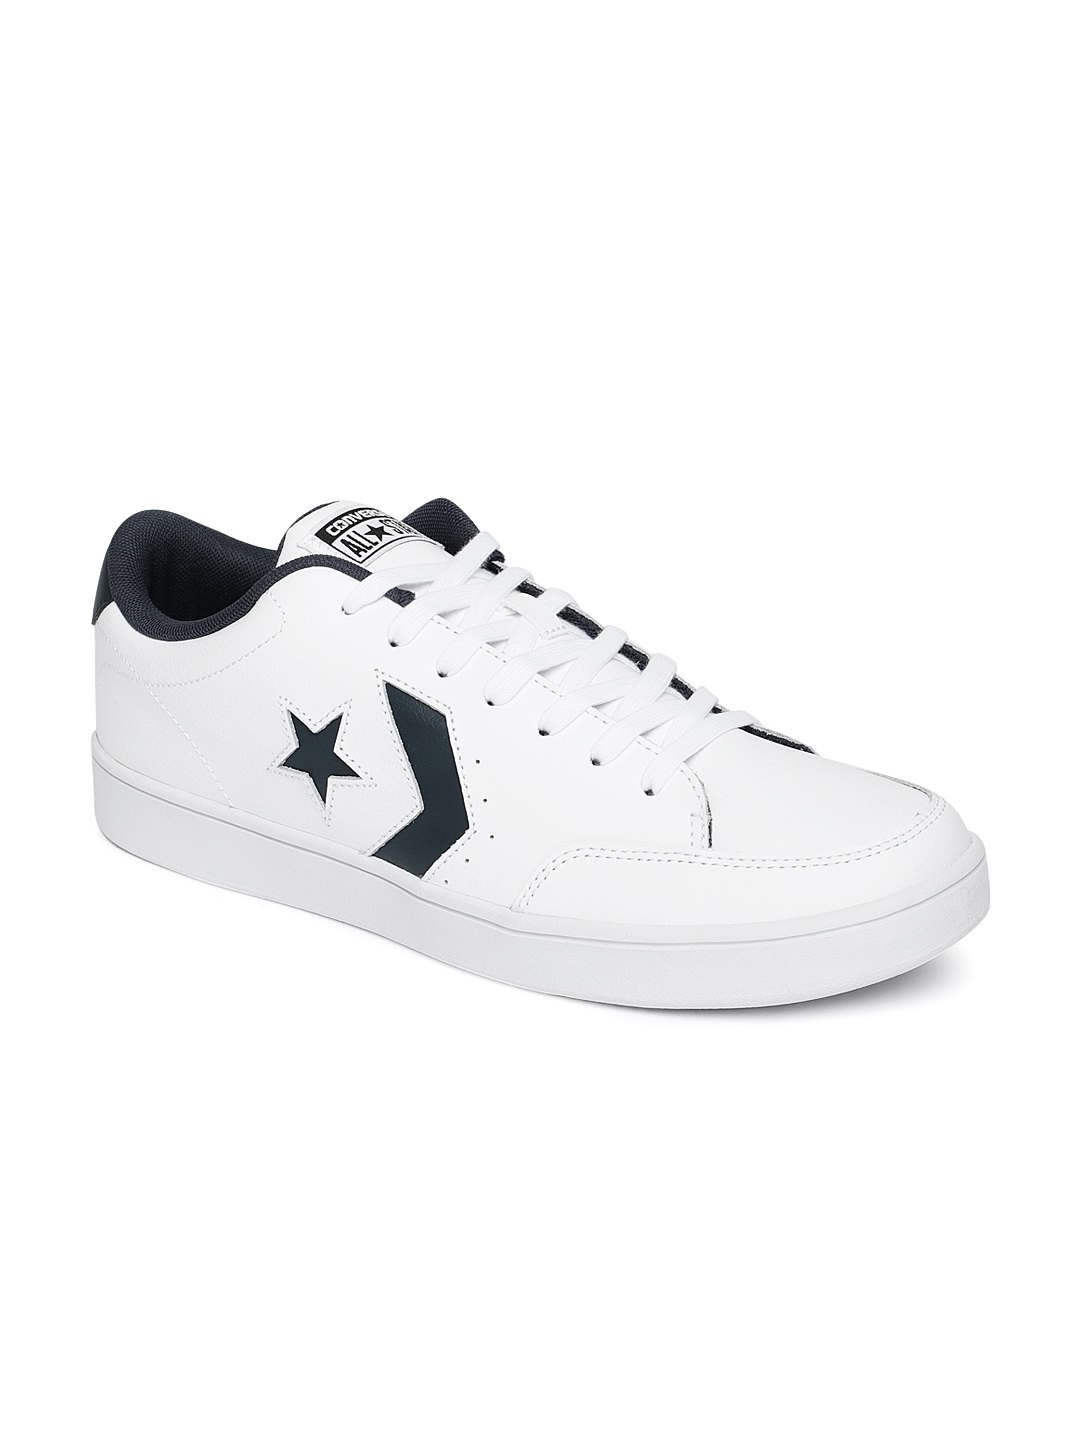 5921b901cb50eb Buy Converse Men White   Navy Leather Sneakers - Casual Shoes for ...